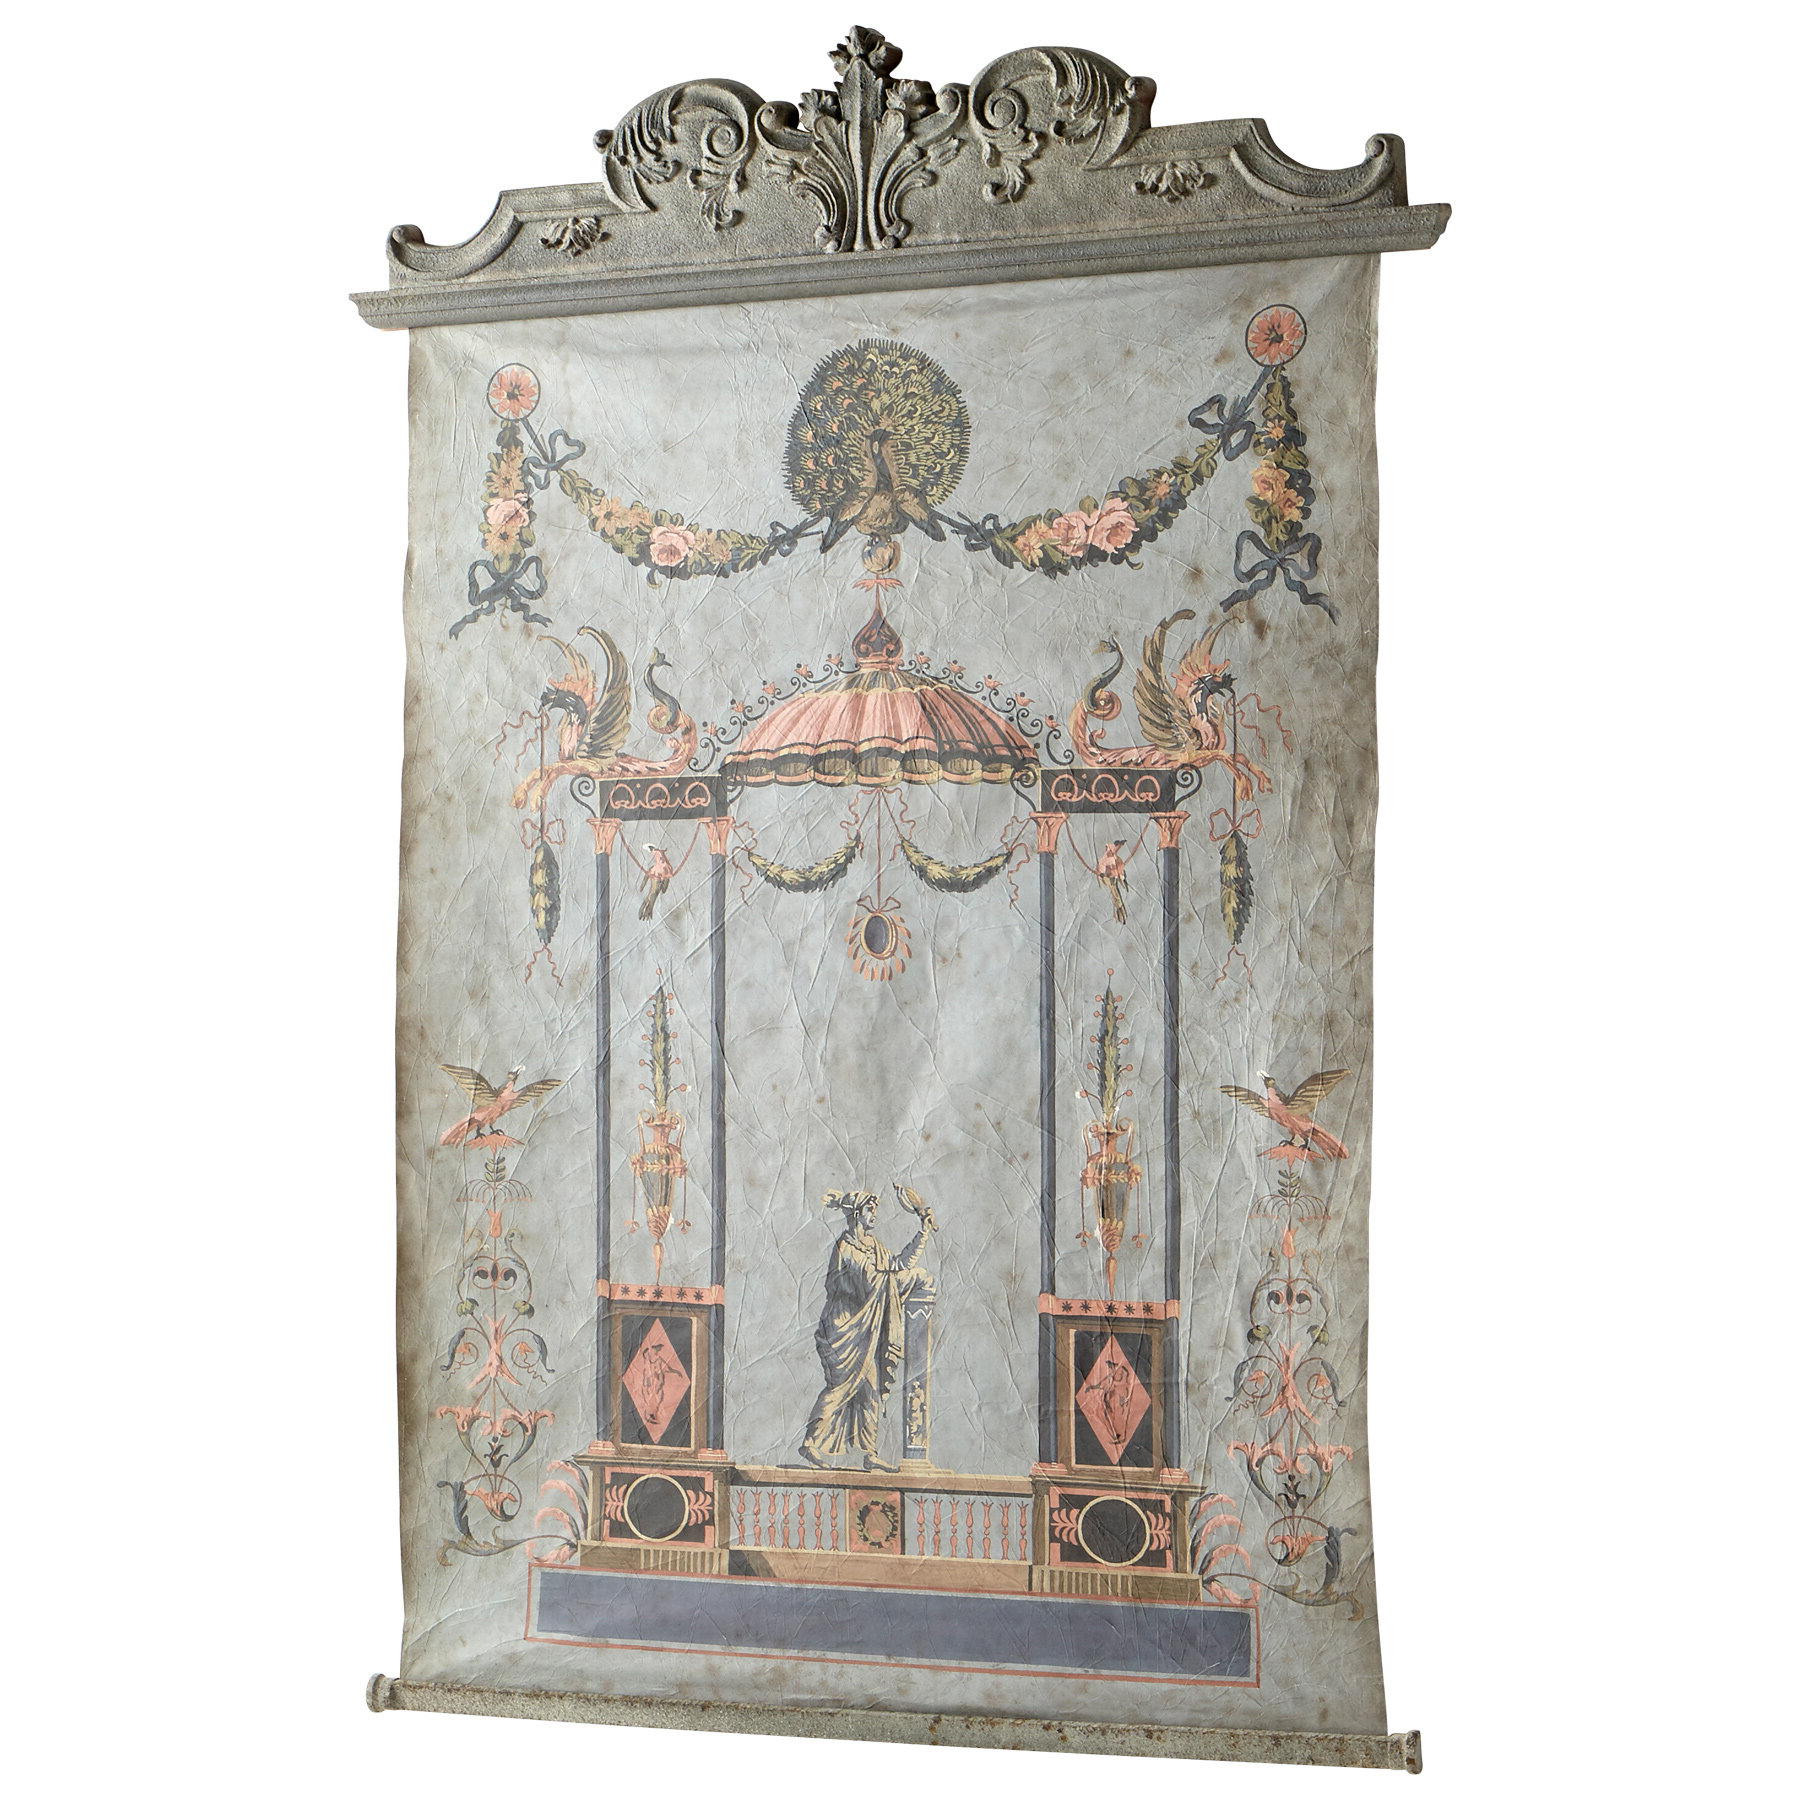 Blended Fabric Ethereal Days Chinoiserie Wall Hanging With Rod Inside Well Known Blended Fabric Wall Hangings (View 14 of 20)